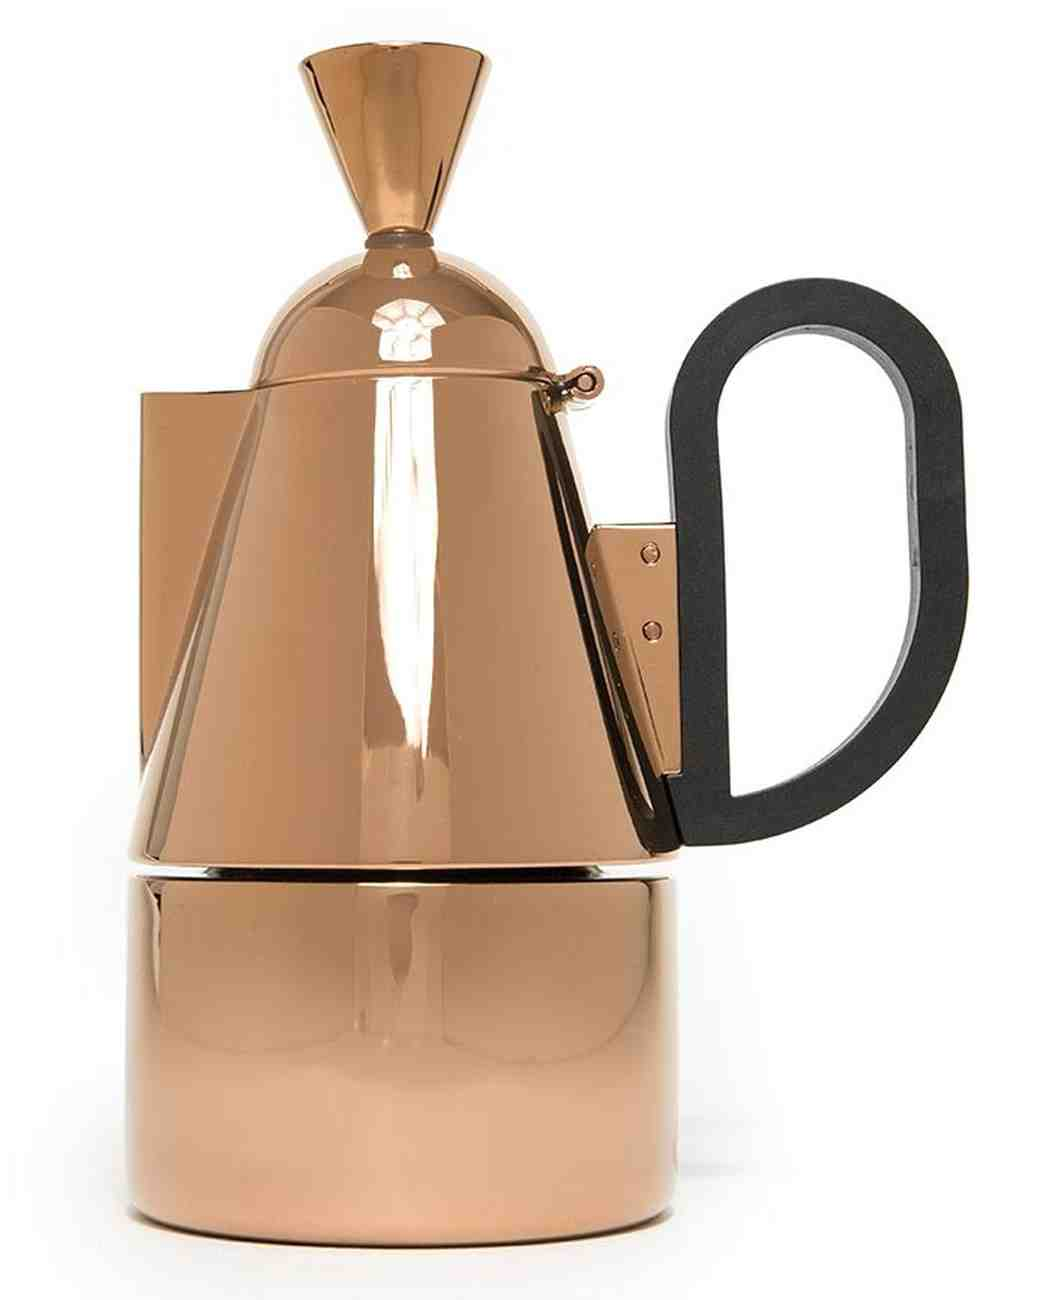 valentines-day-gifts-for-her-needsupply-stovetop-coffee-maker-0216.jpg